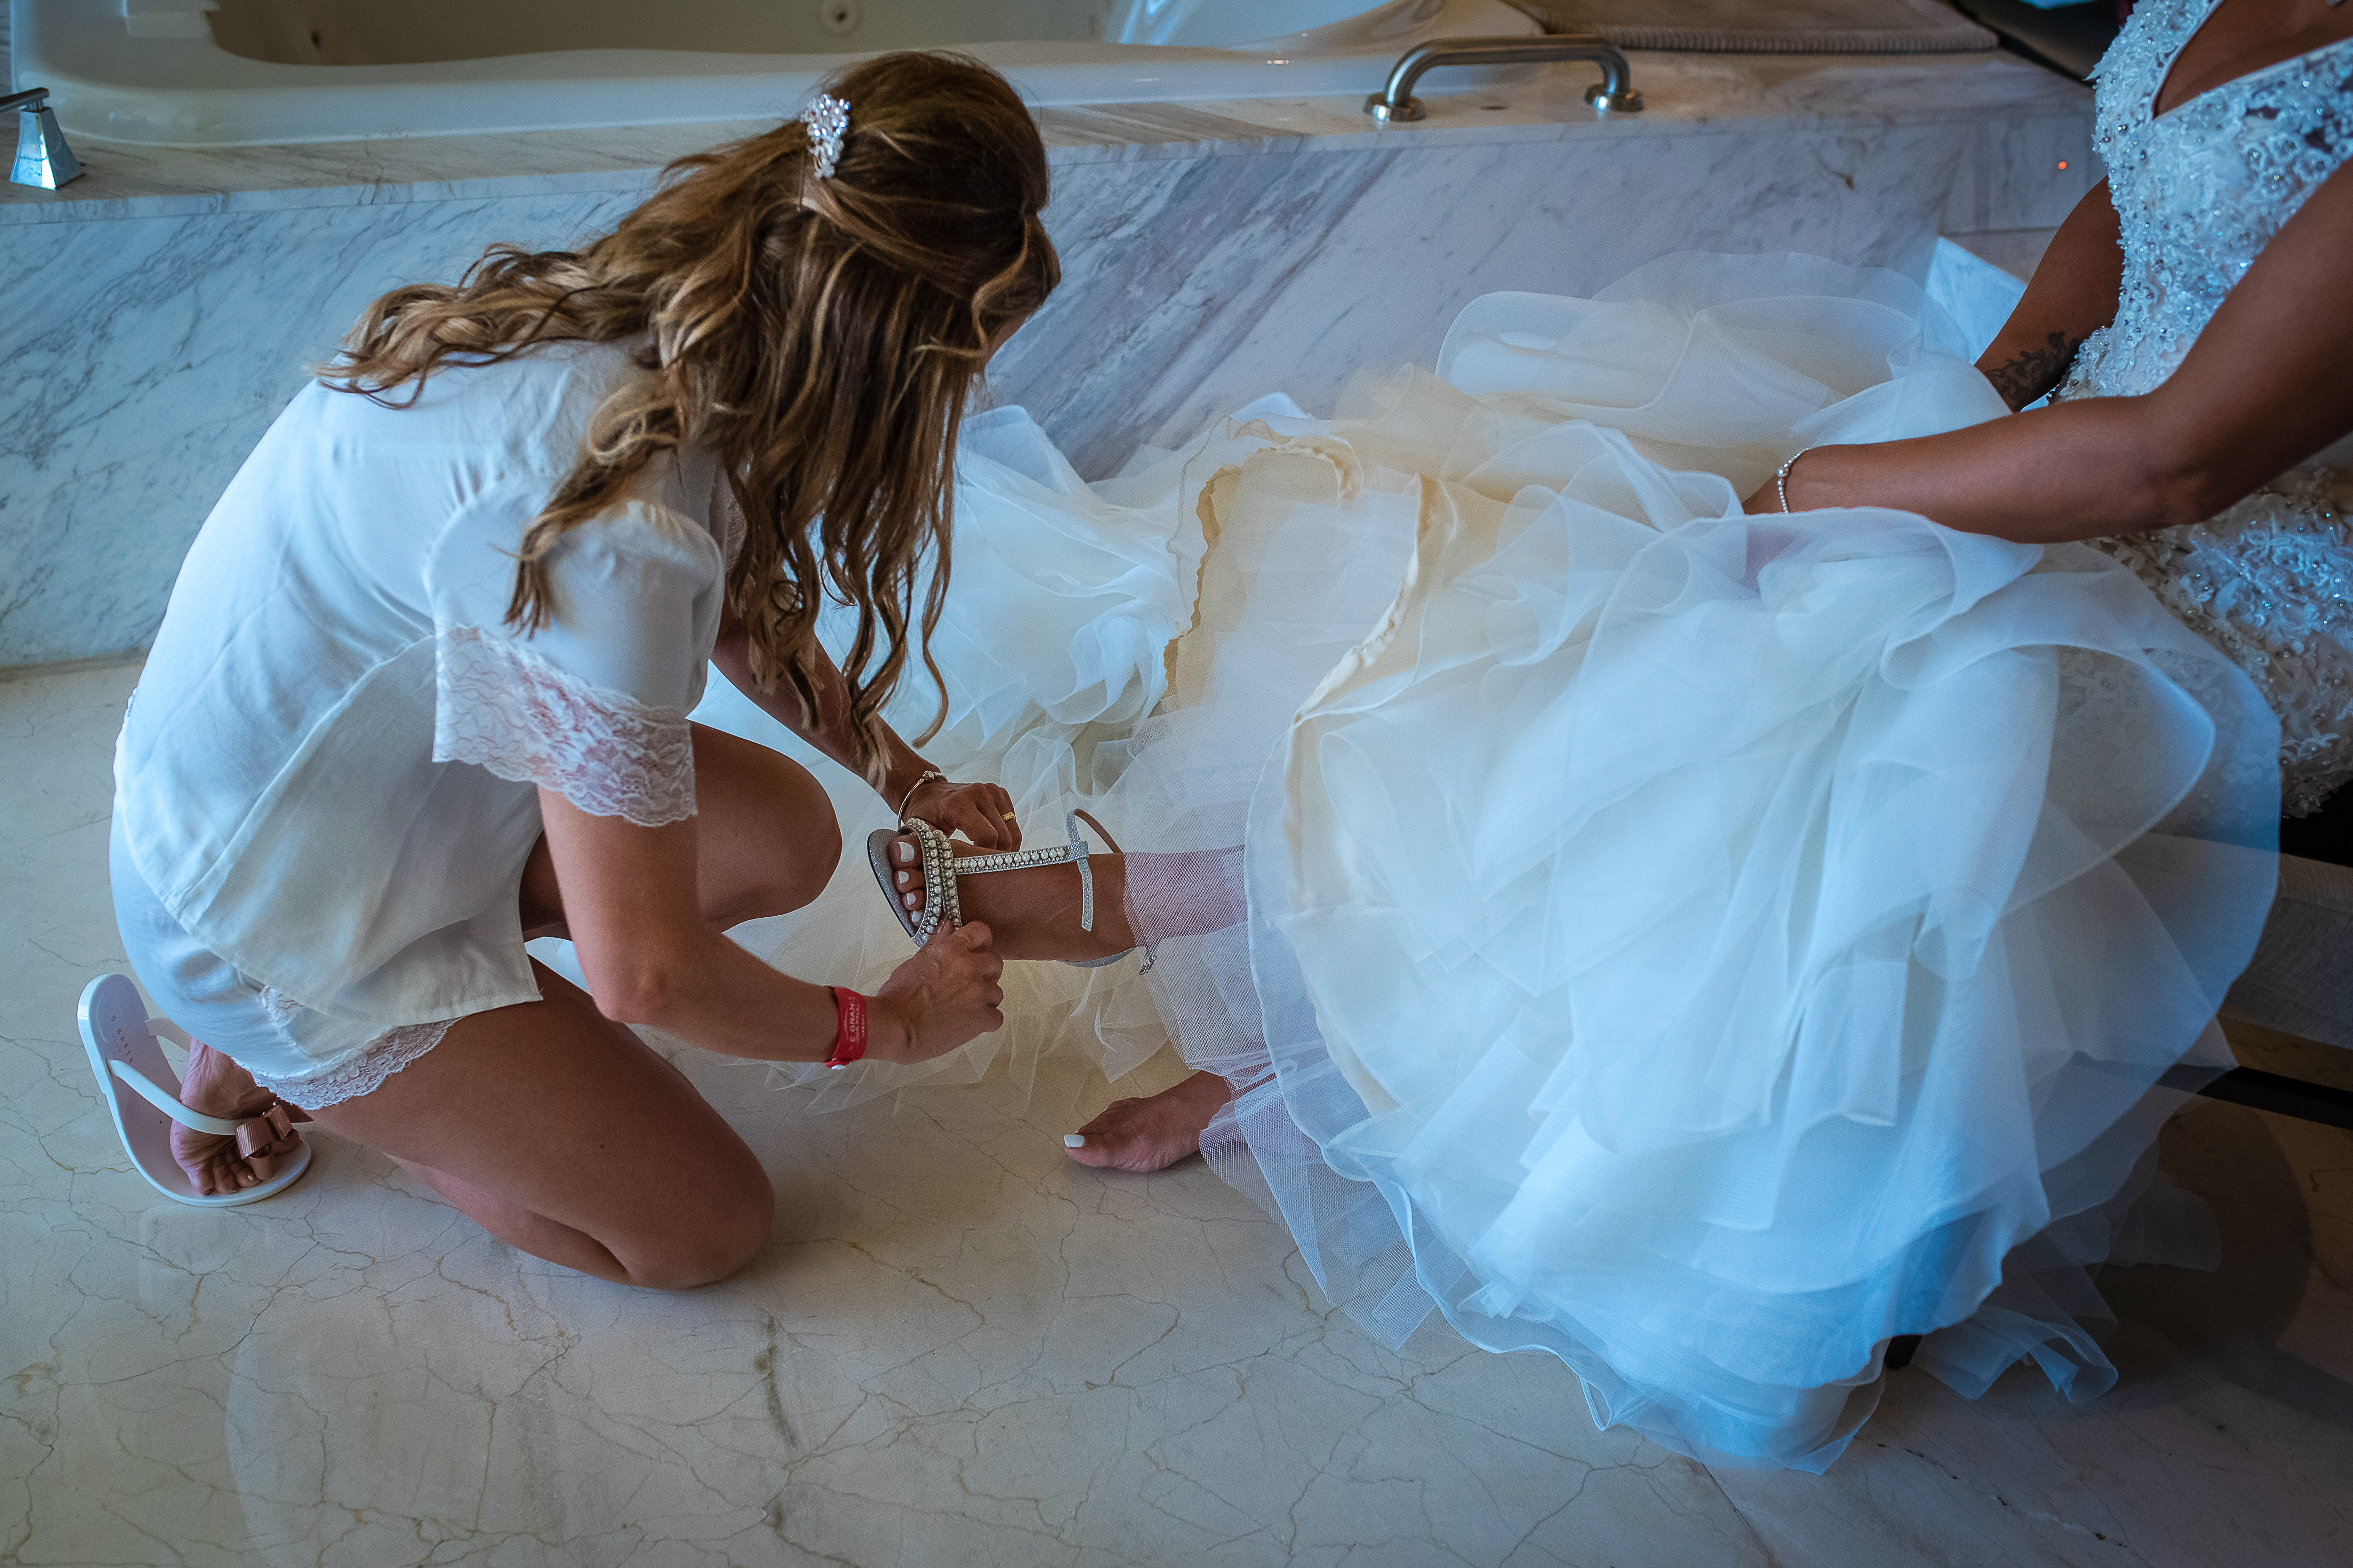 the main of honor during the getting ready helping to the bride to putting on the bride shoes in the gran at moon palace resort